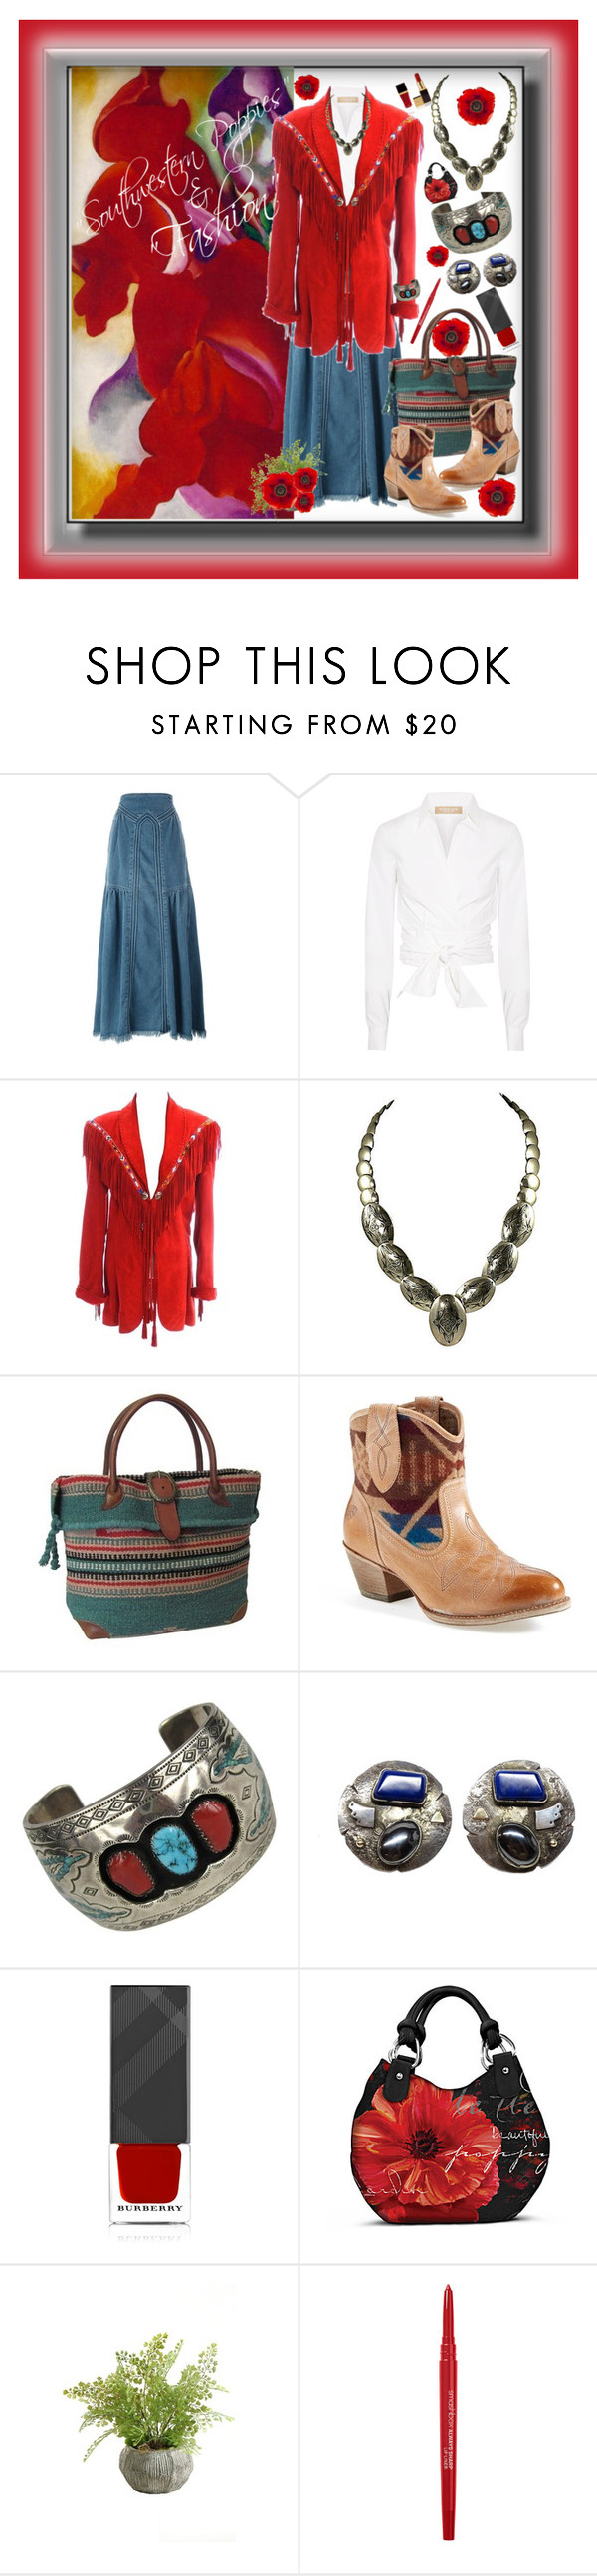 """""""Untitled #619"""" by onesweetthing ❤ liked on Polyvore featuring Chloé, Michael Kors, AmeriLeather, Ariat, Burberry, The Bradford Exchange, Tom Ford, Paul Frank and Smashbox"""